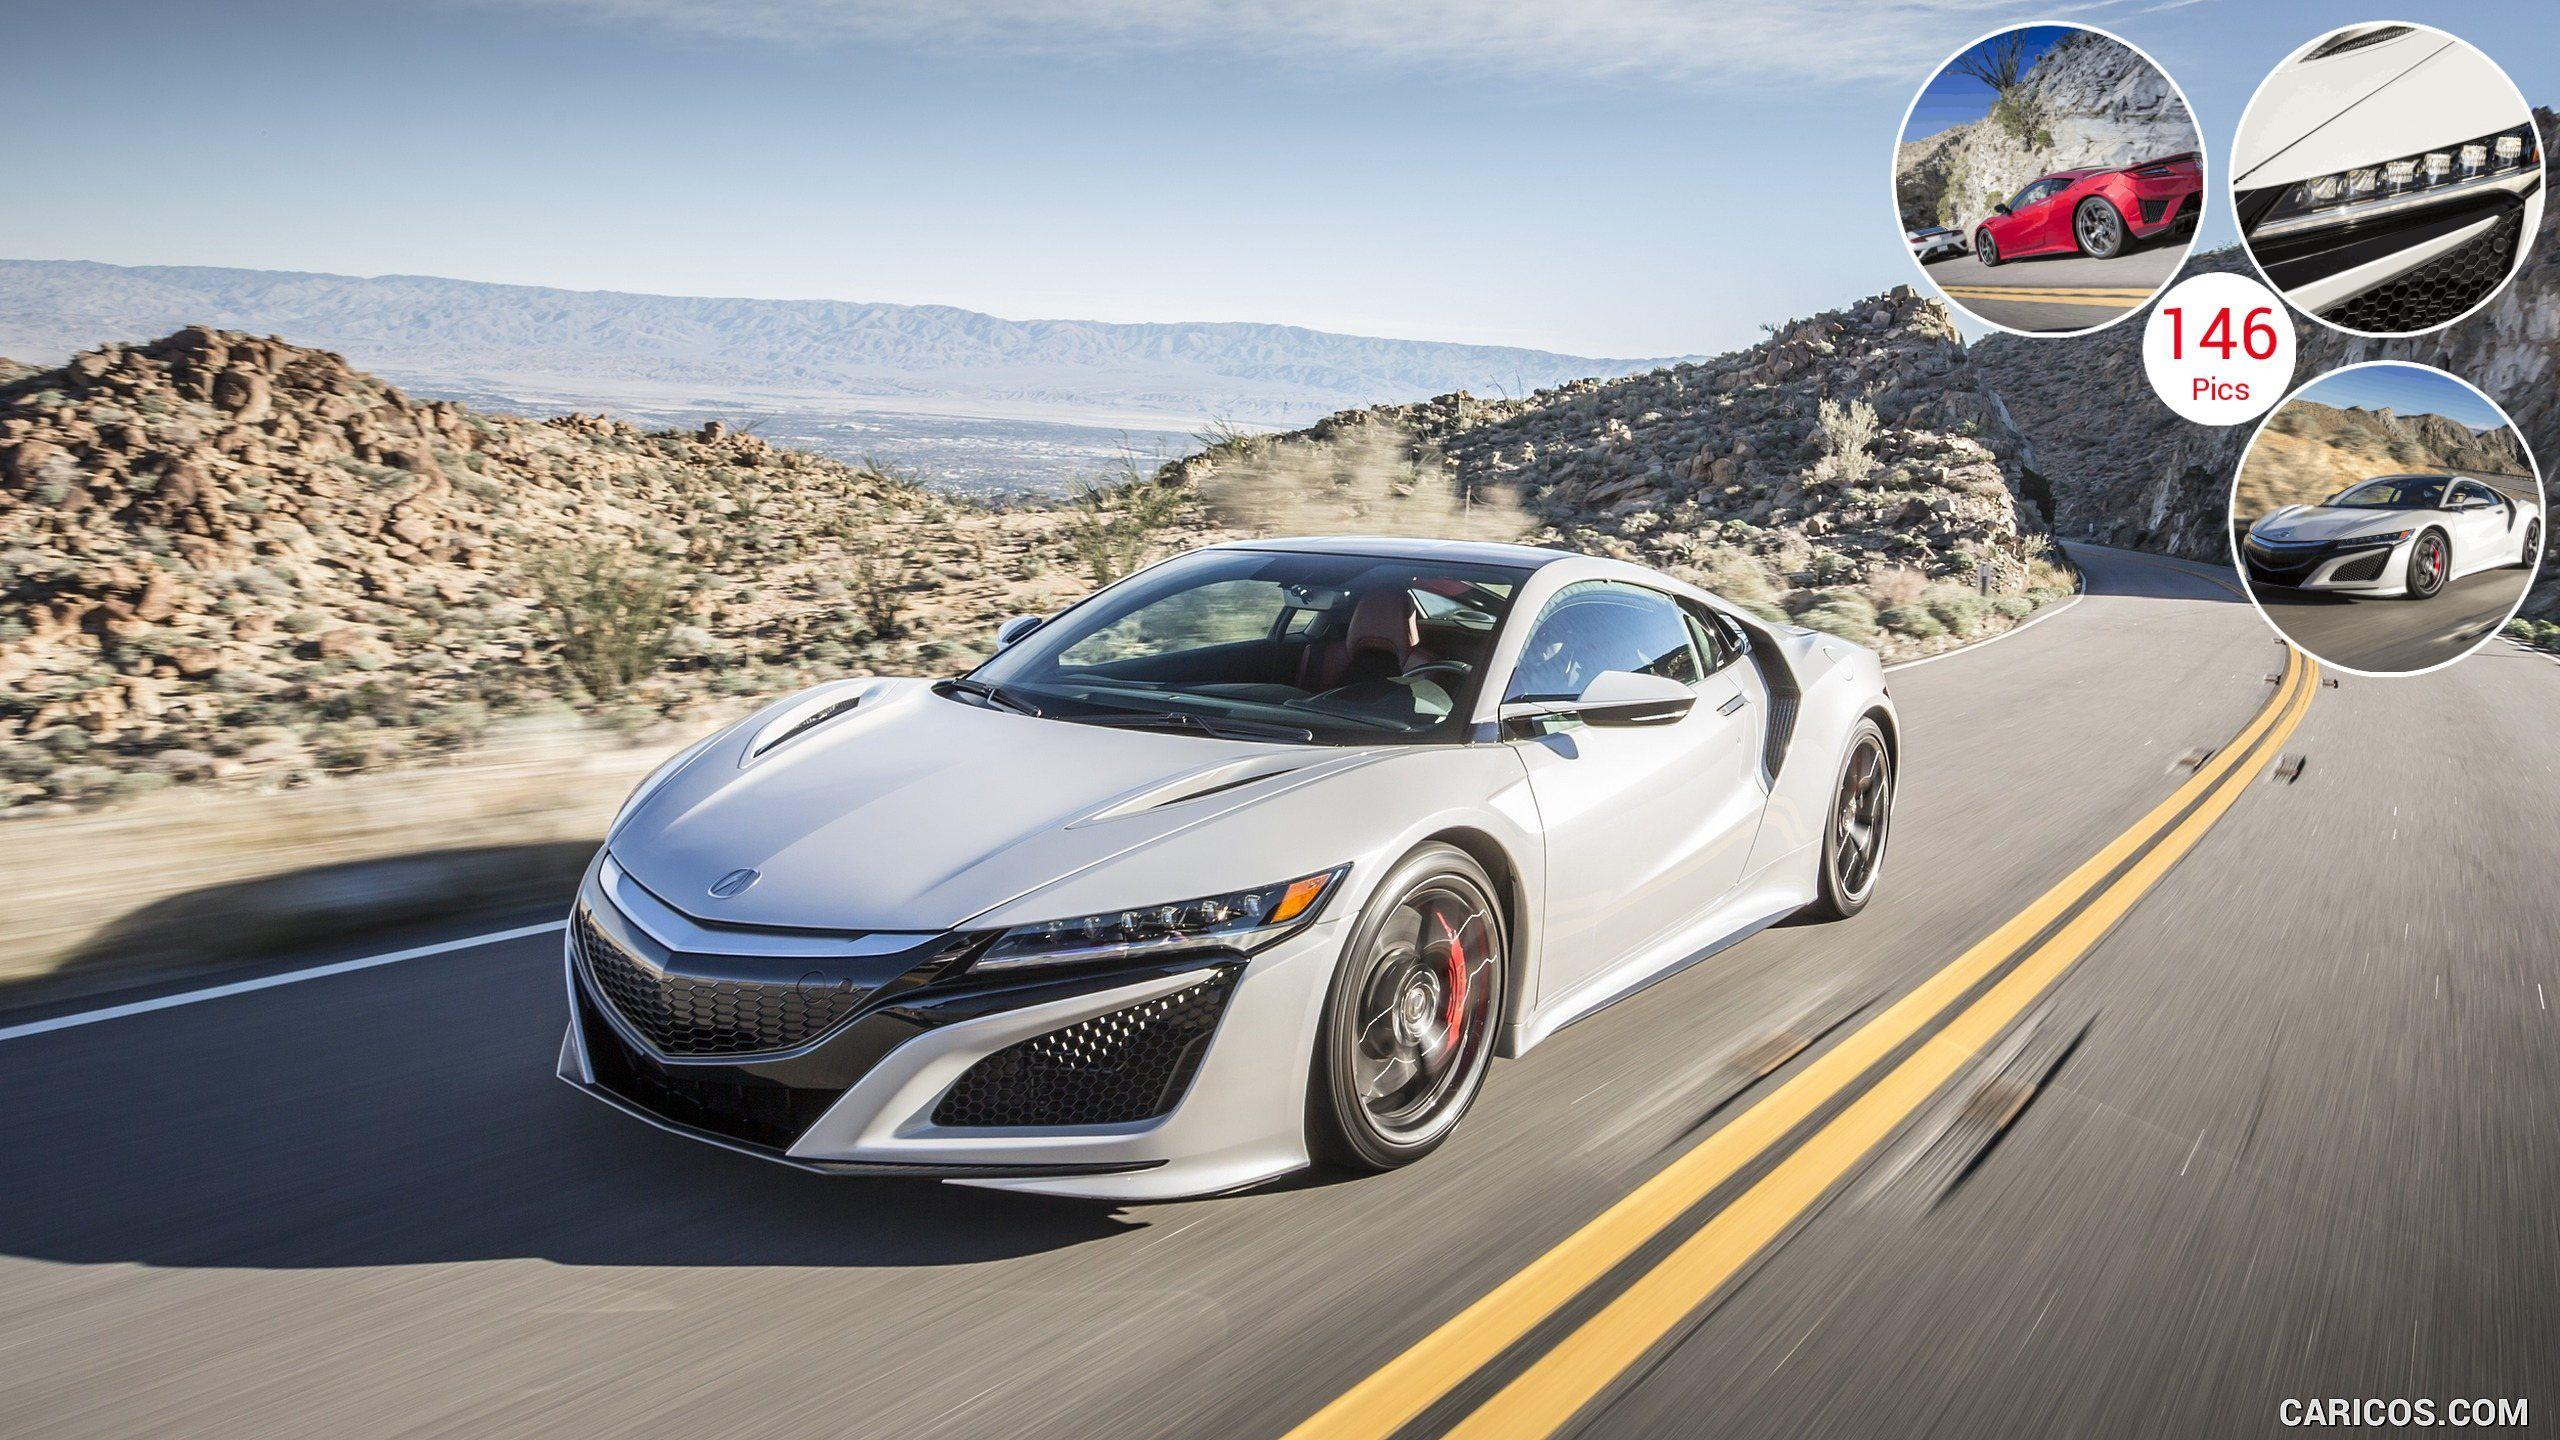 2017 Acura NSX Wallpapers - Wallpaper Cave